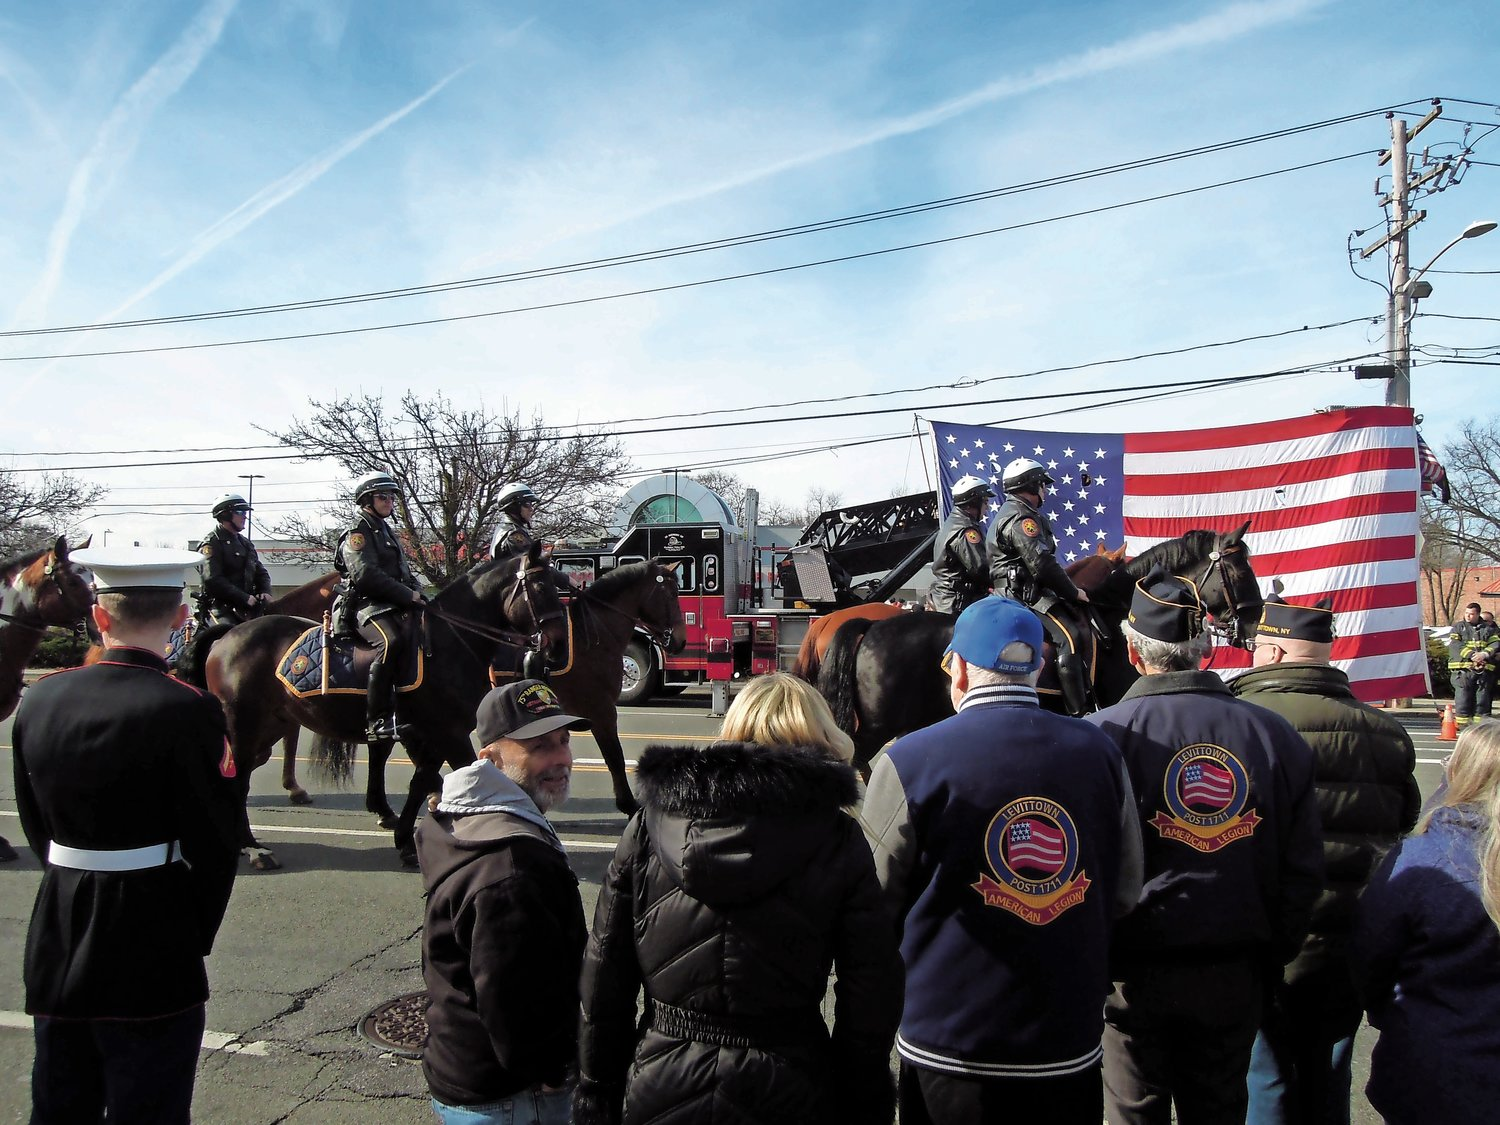 The Nassau County Police Department's mounted unit paid its respects in front of an oversized American flag, courtesy of the Wantagh Volunteer Fire Department.